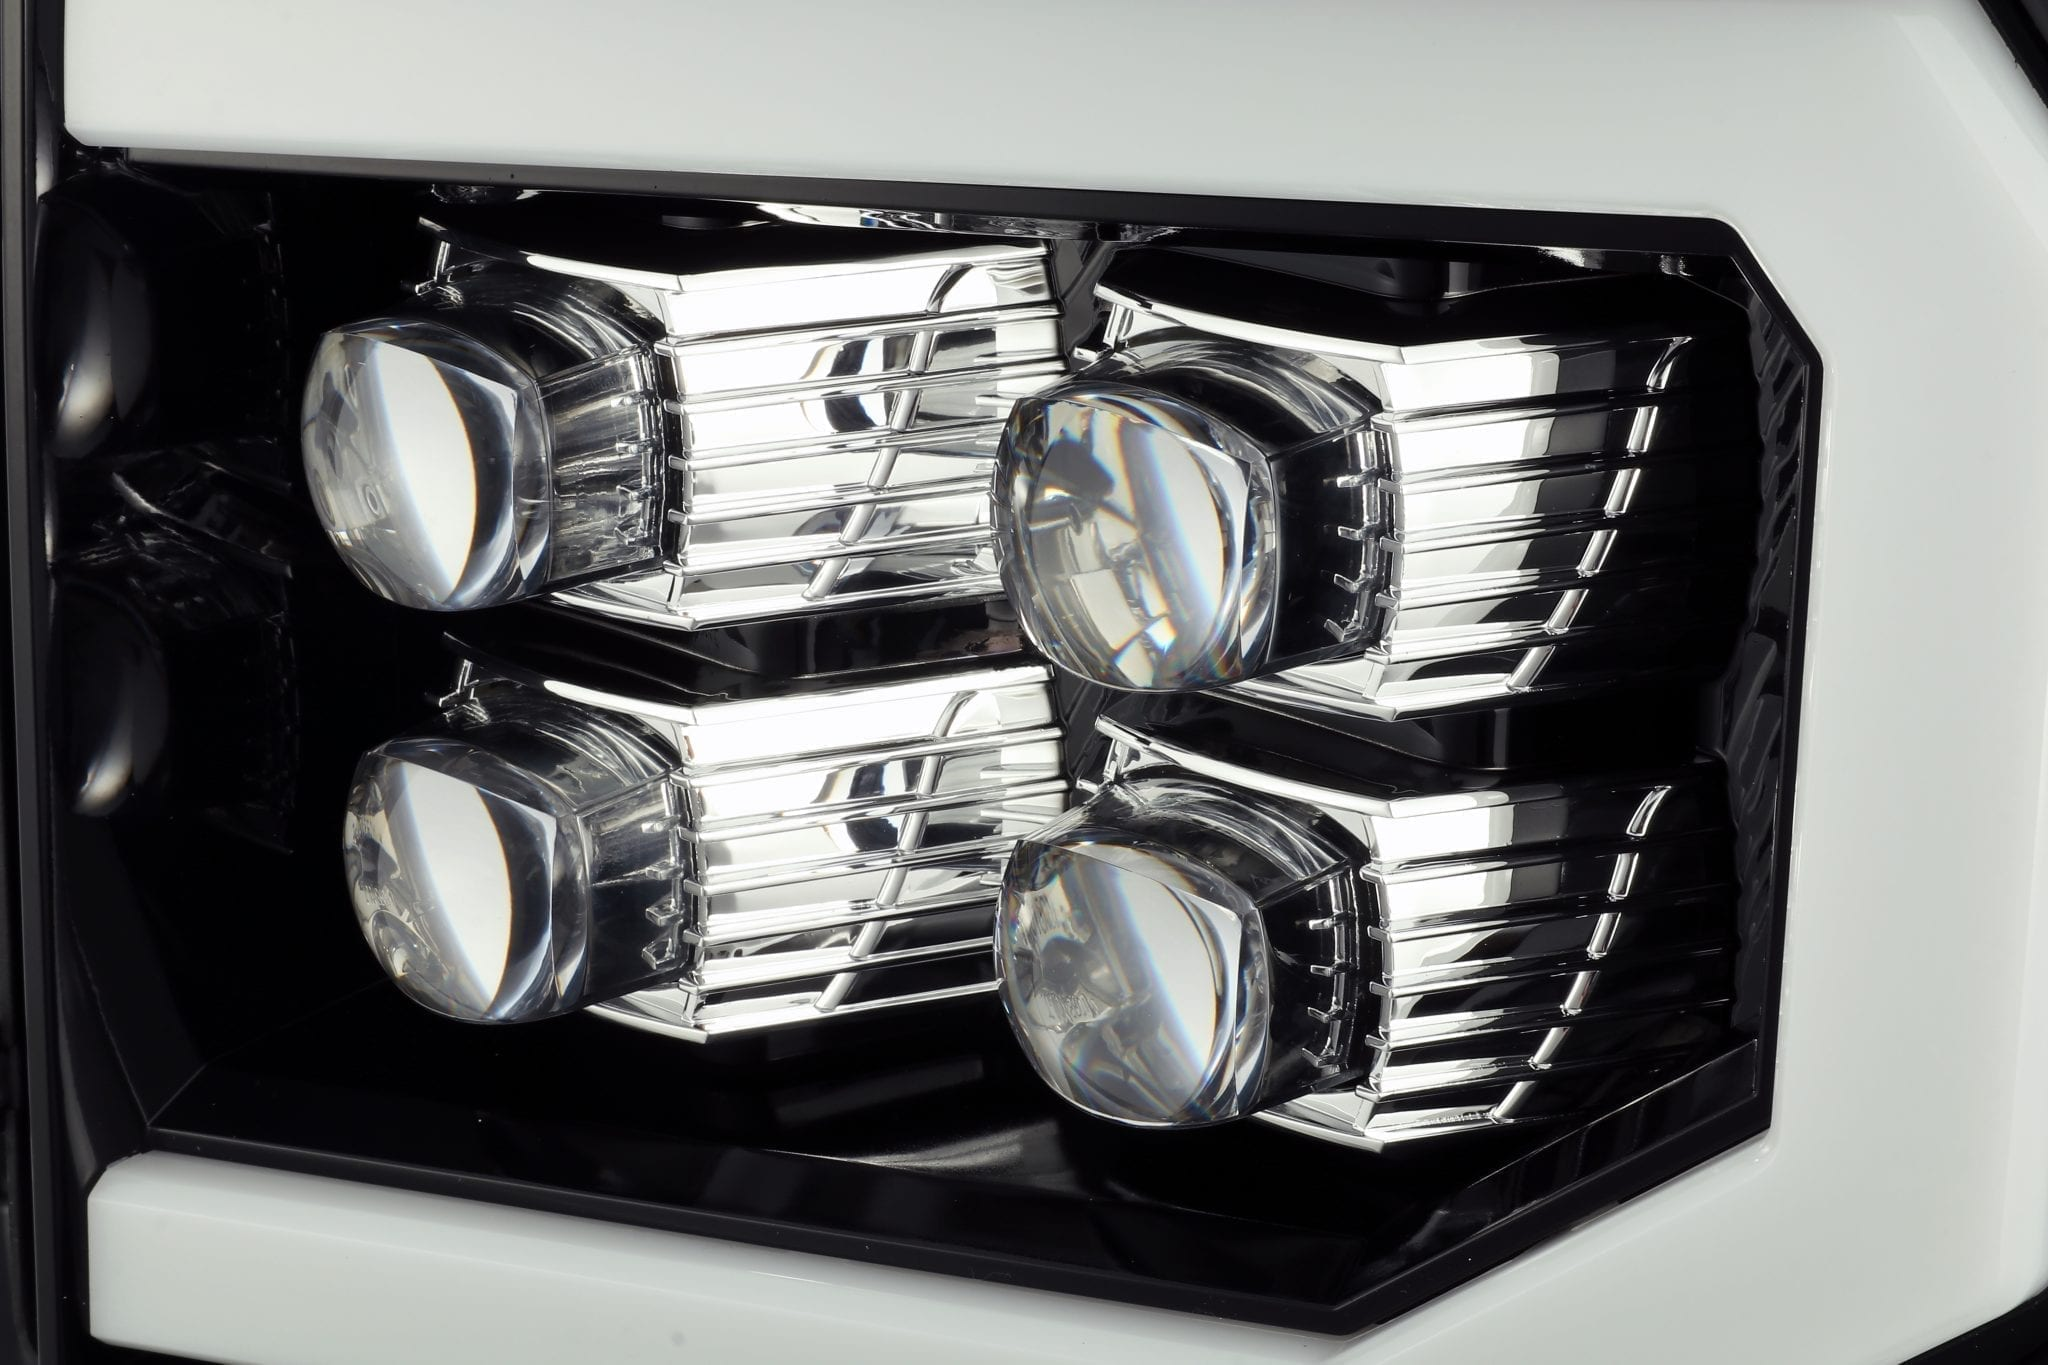 2007 2008 2009 2010 2011 2012 2013 GMC Sierra NOVA-Series Projector Headlights Jet Black